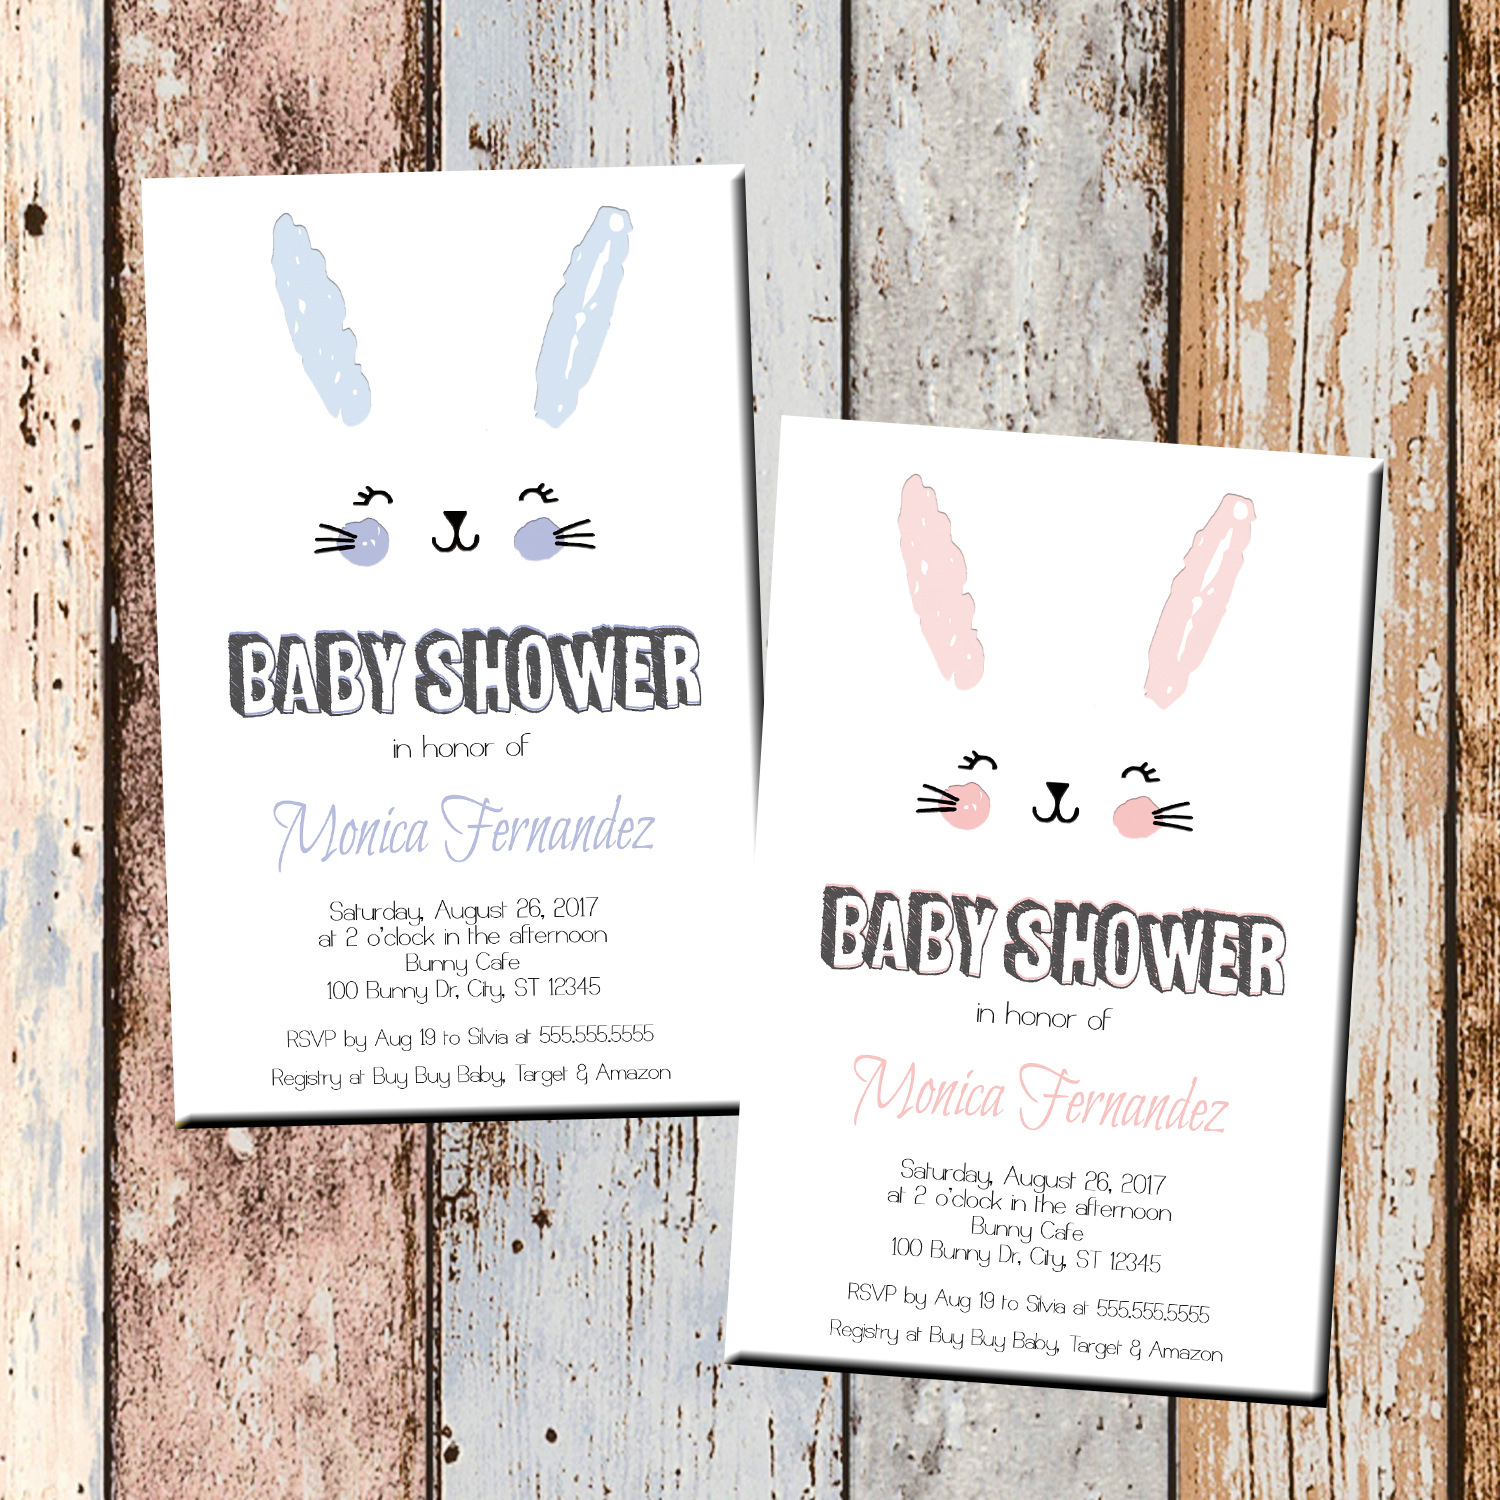 Bunny Rabbit Baby Shower Invitation 1 Sided Scg Designs